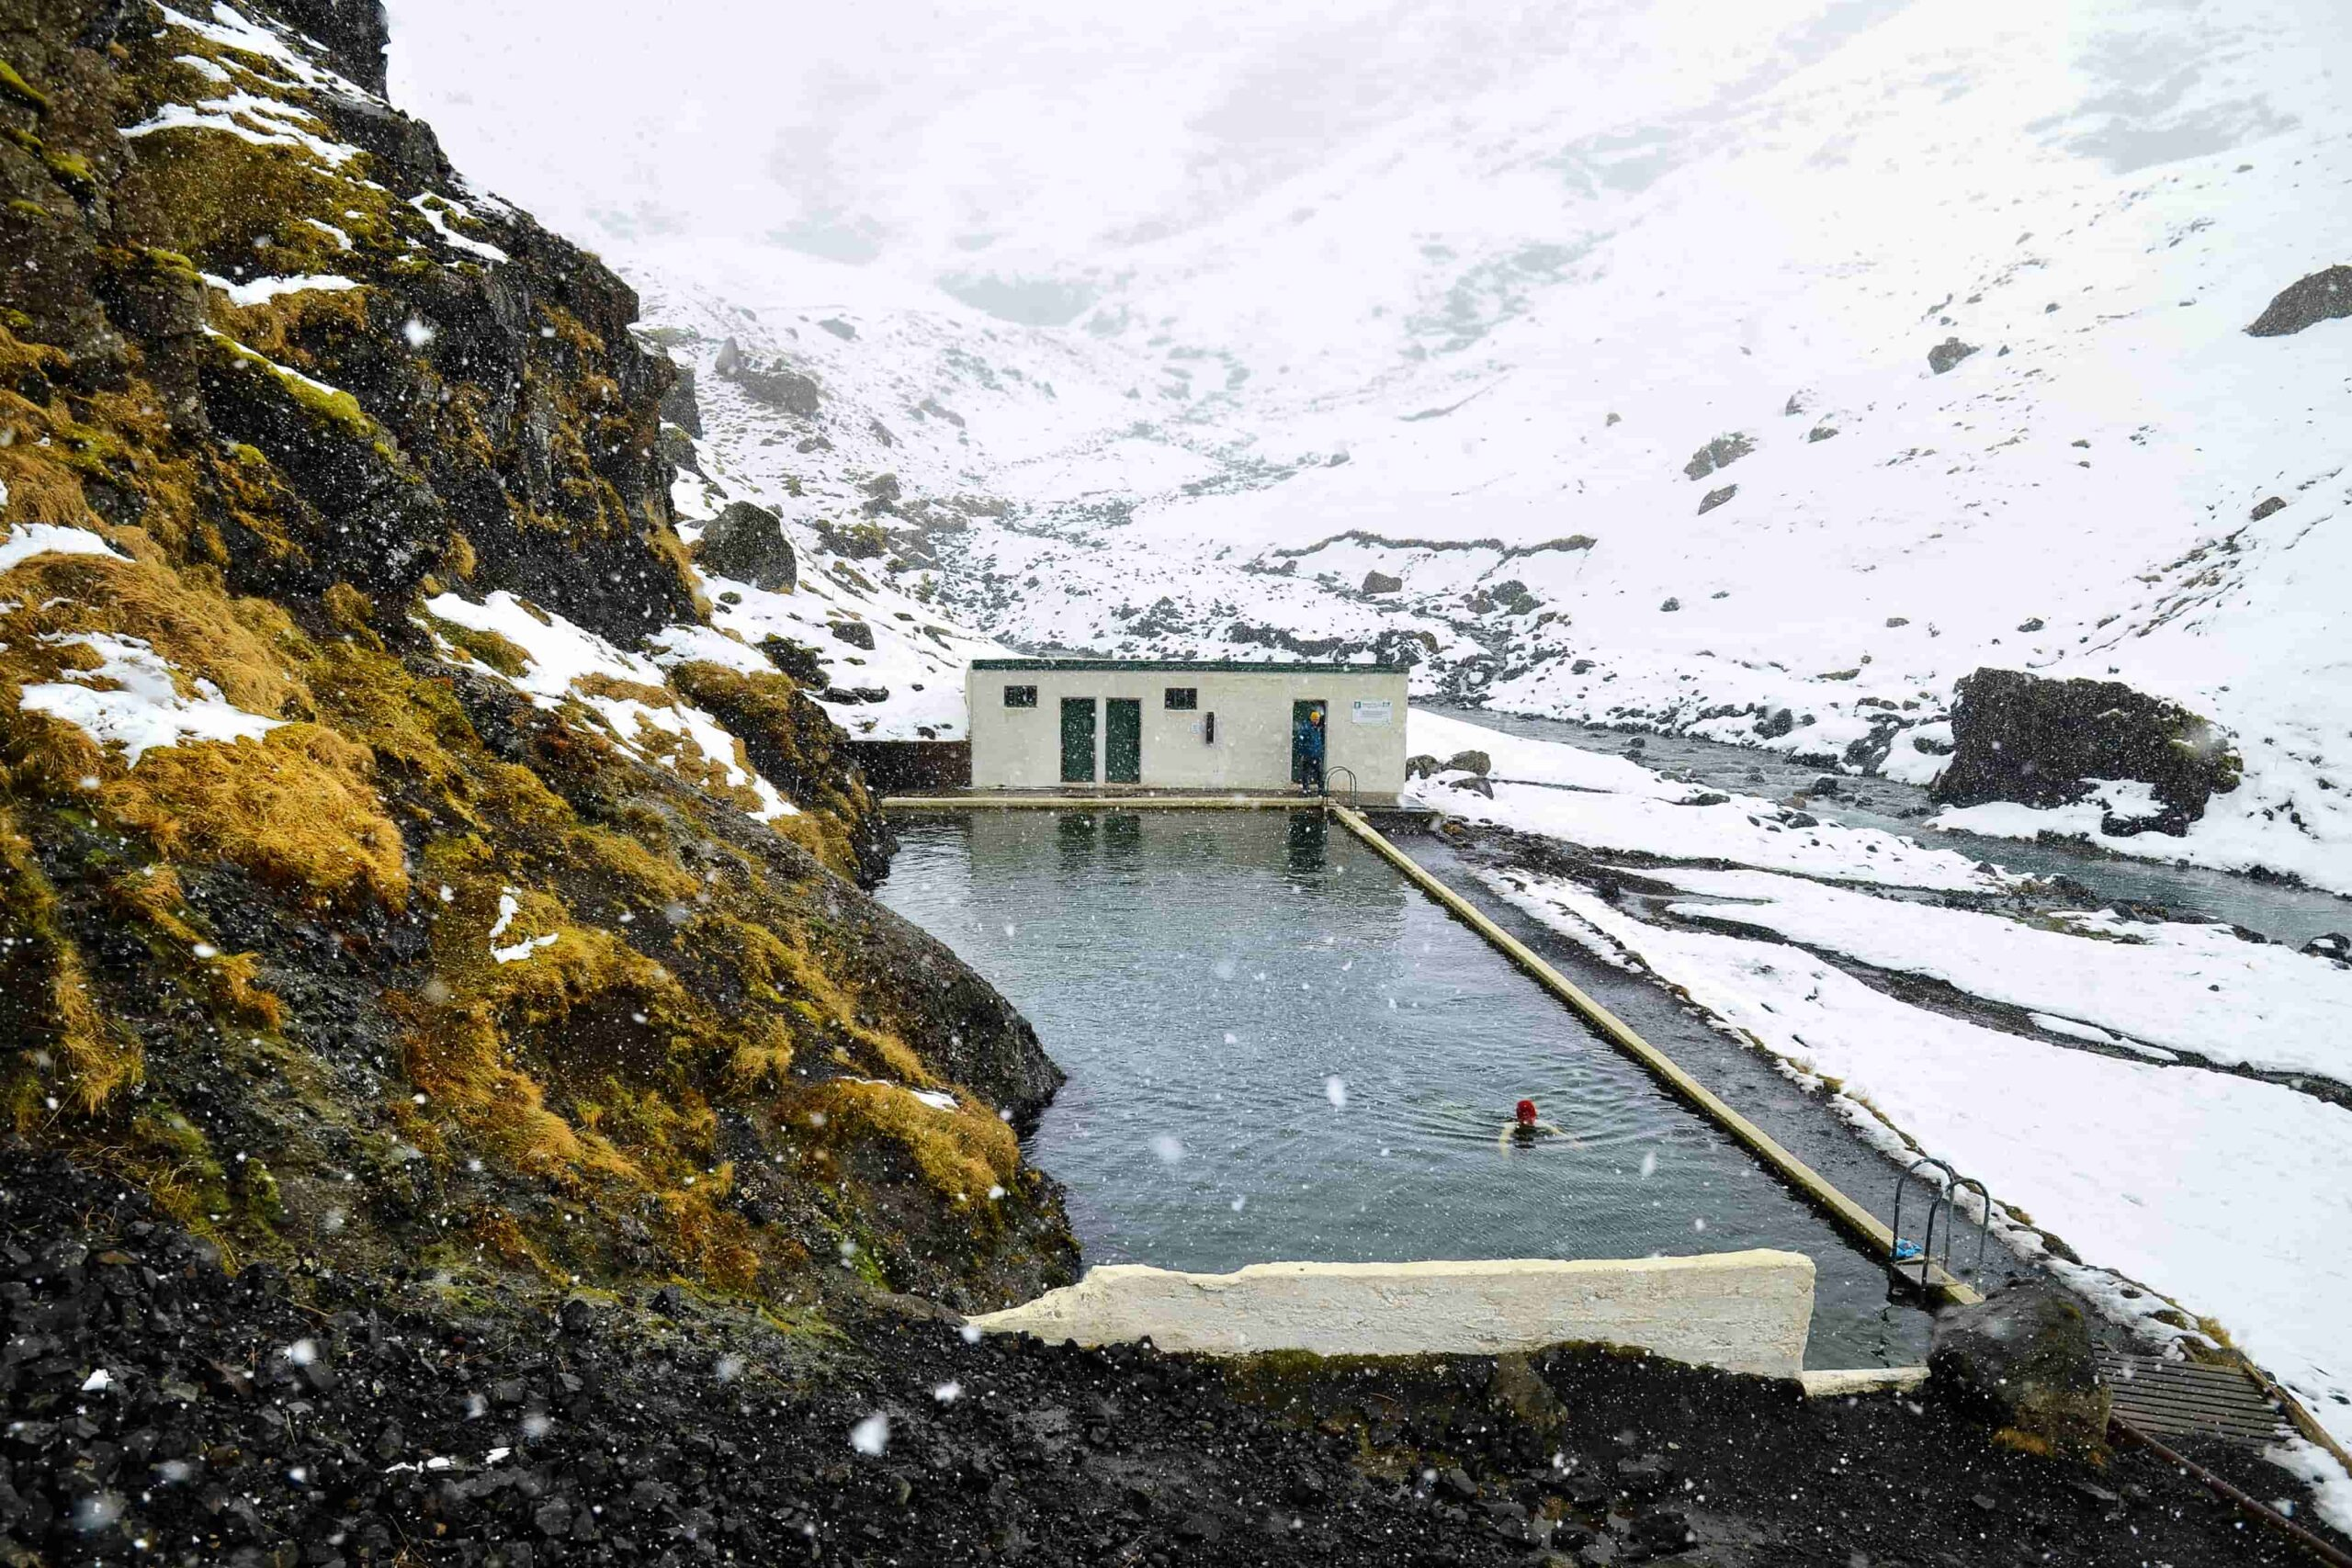 Seljavallalaug natural swimming pool in south Iceland in winter